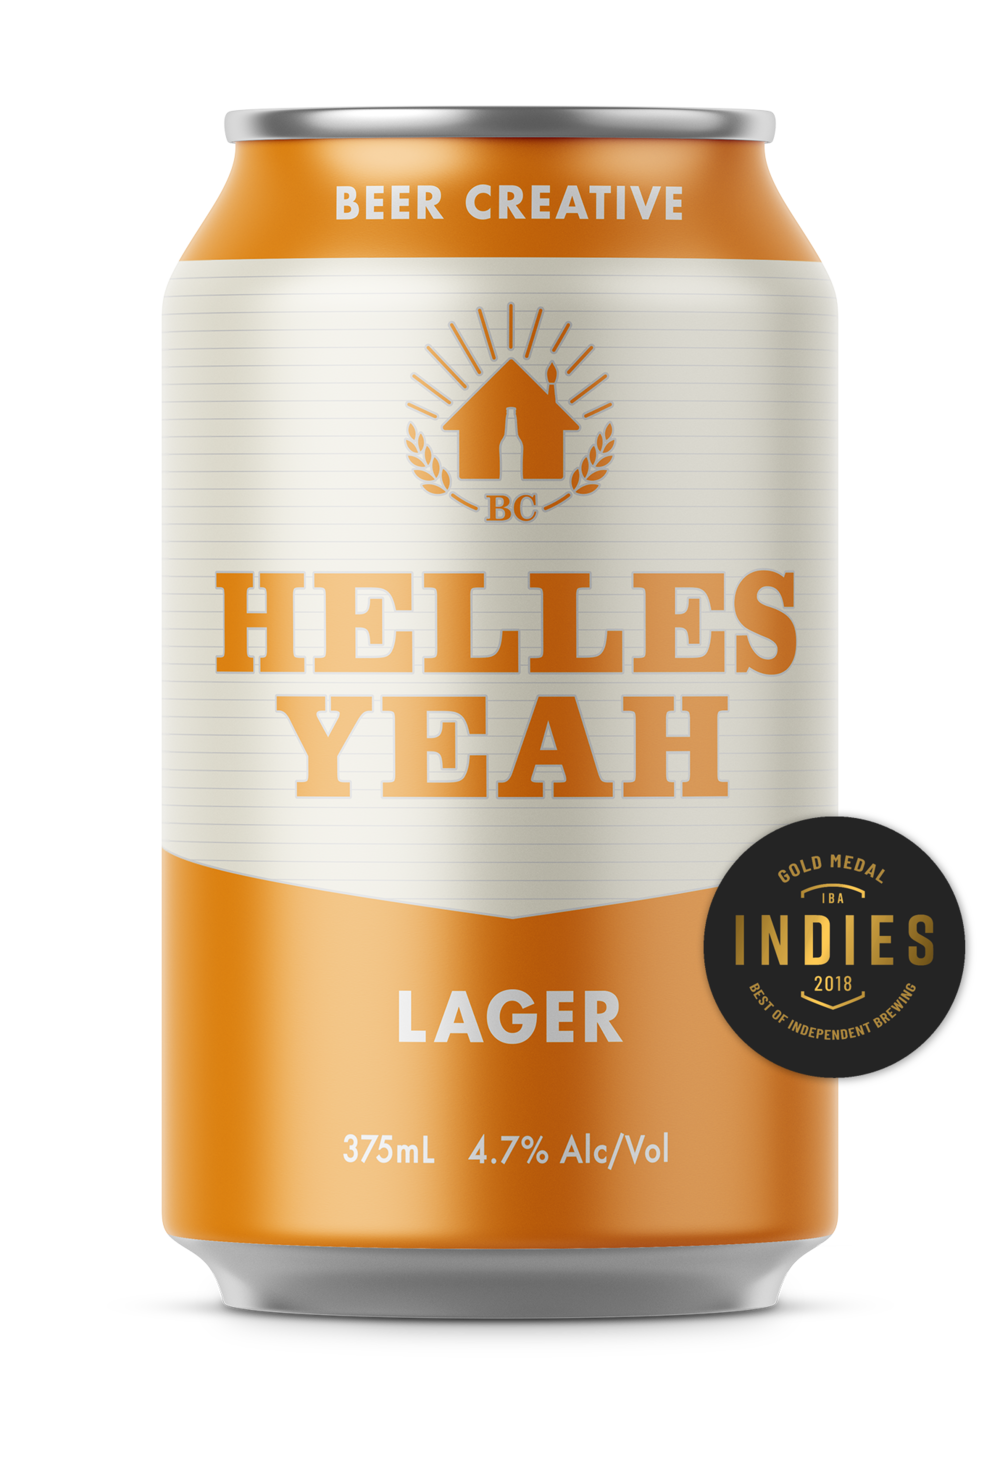 180703_HellesYeah_IBA_Gold4.png